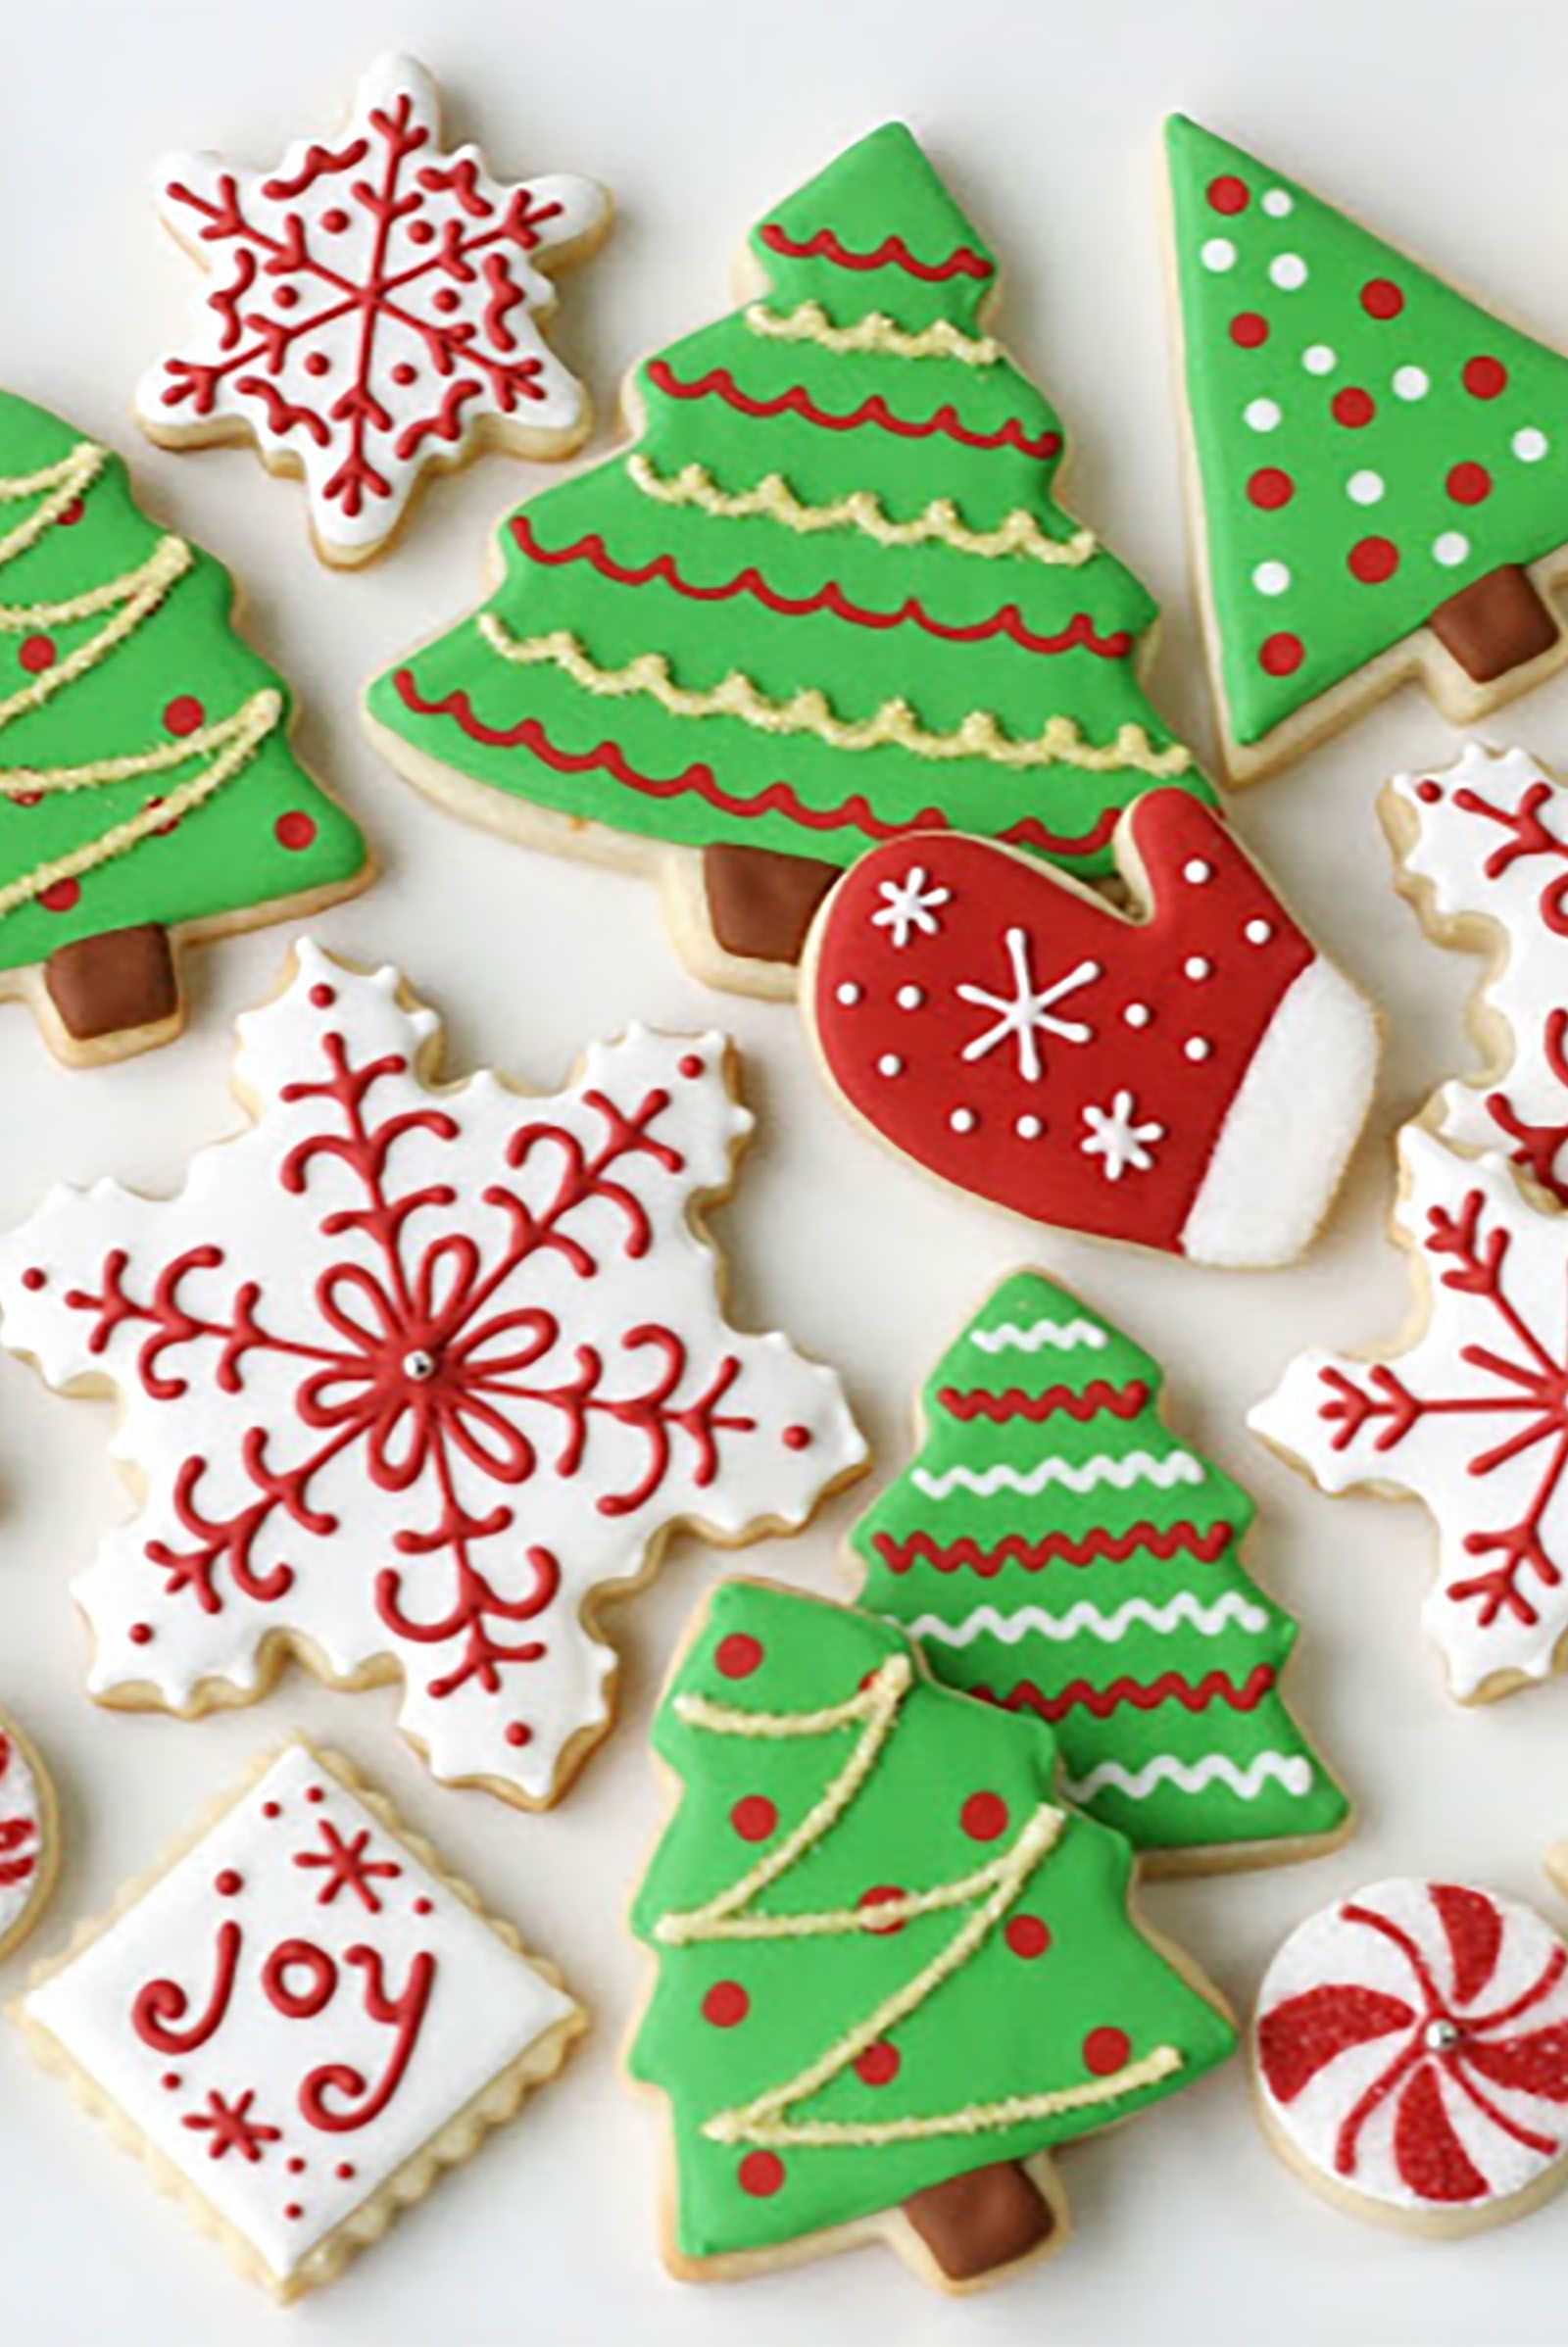 44 easy christmas sugar cookies recipes decorating ideas for holiday sugar cookies - How To Decorate Christmas Cookies